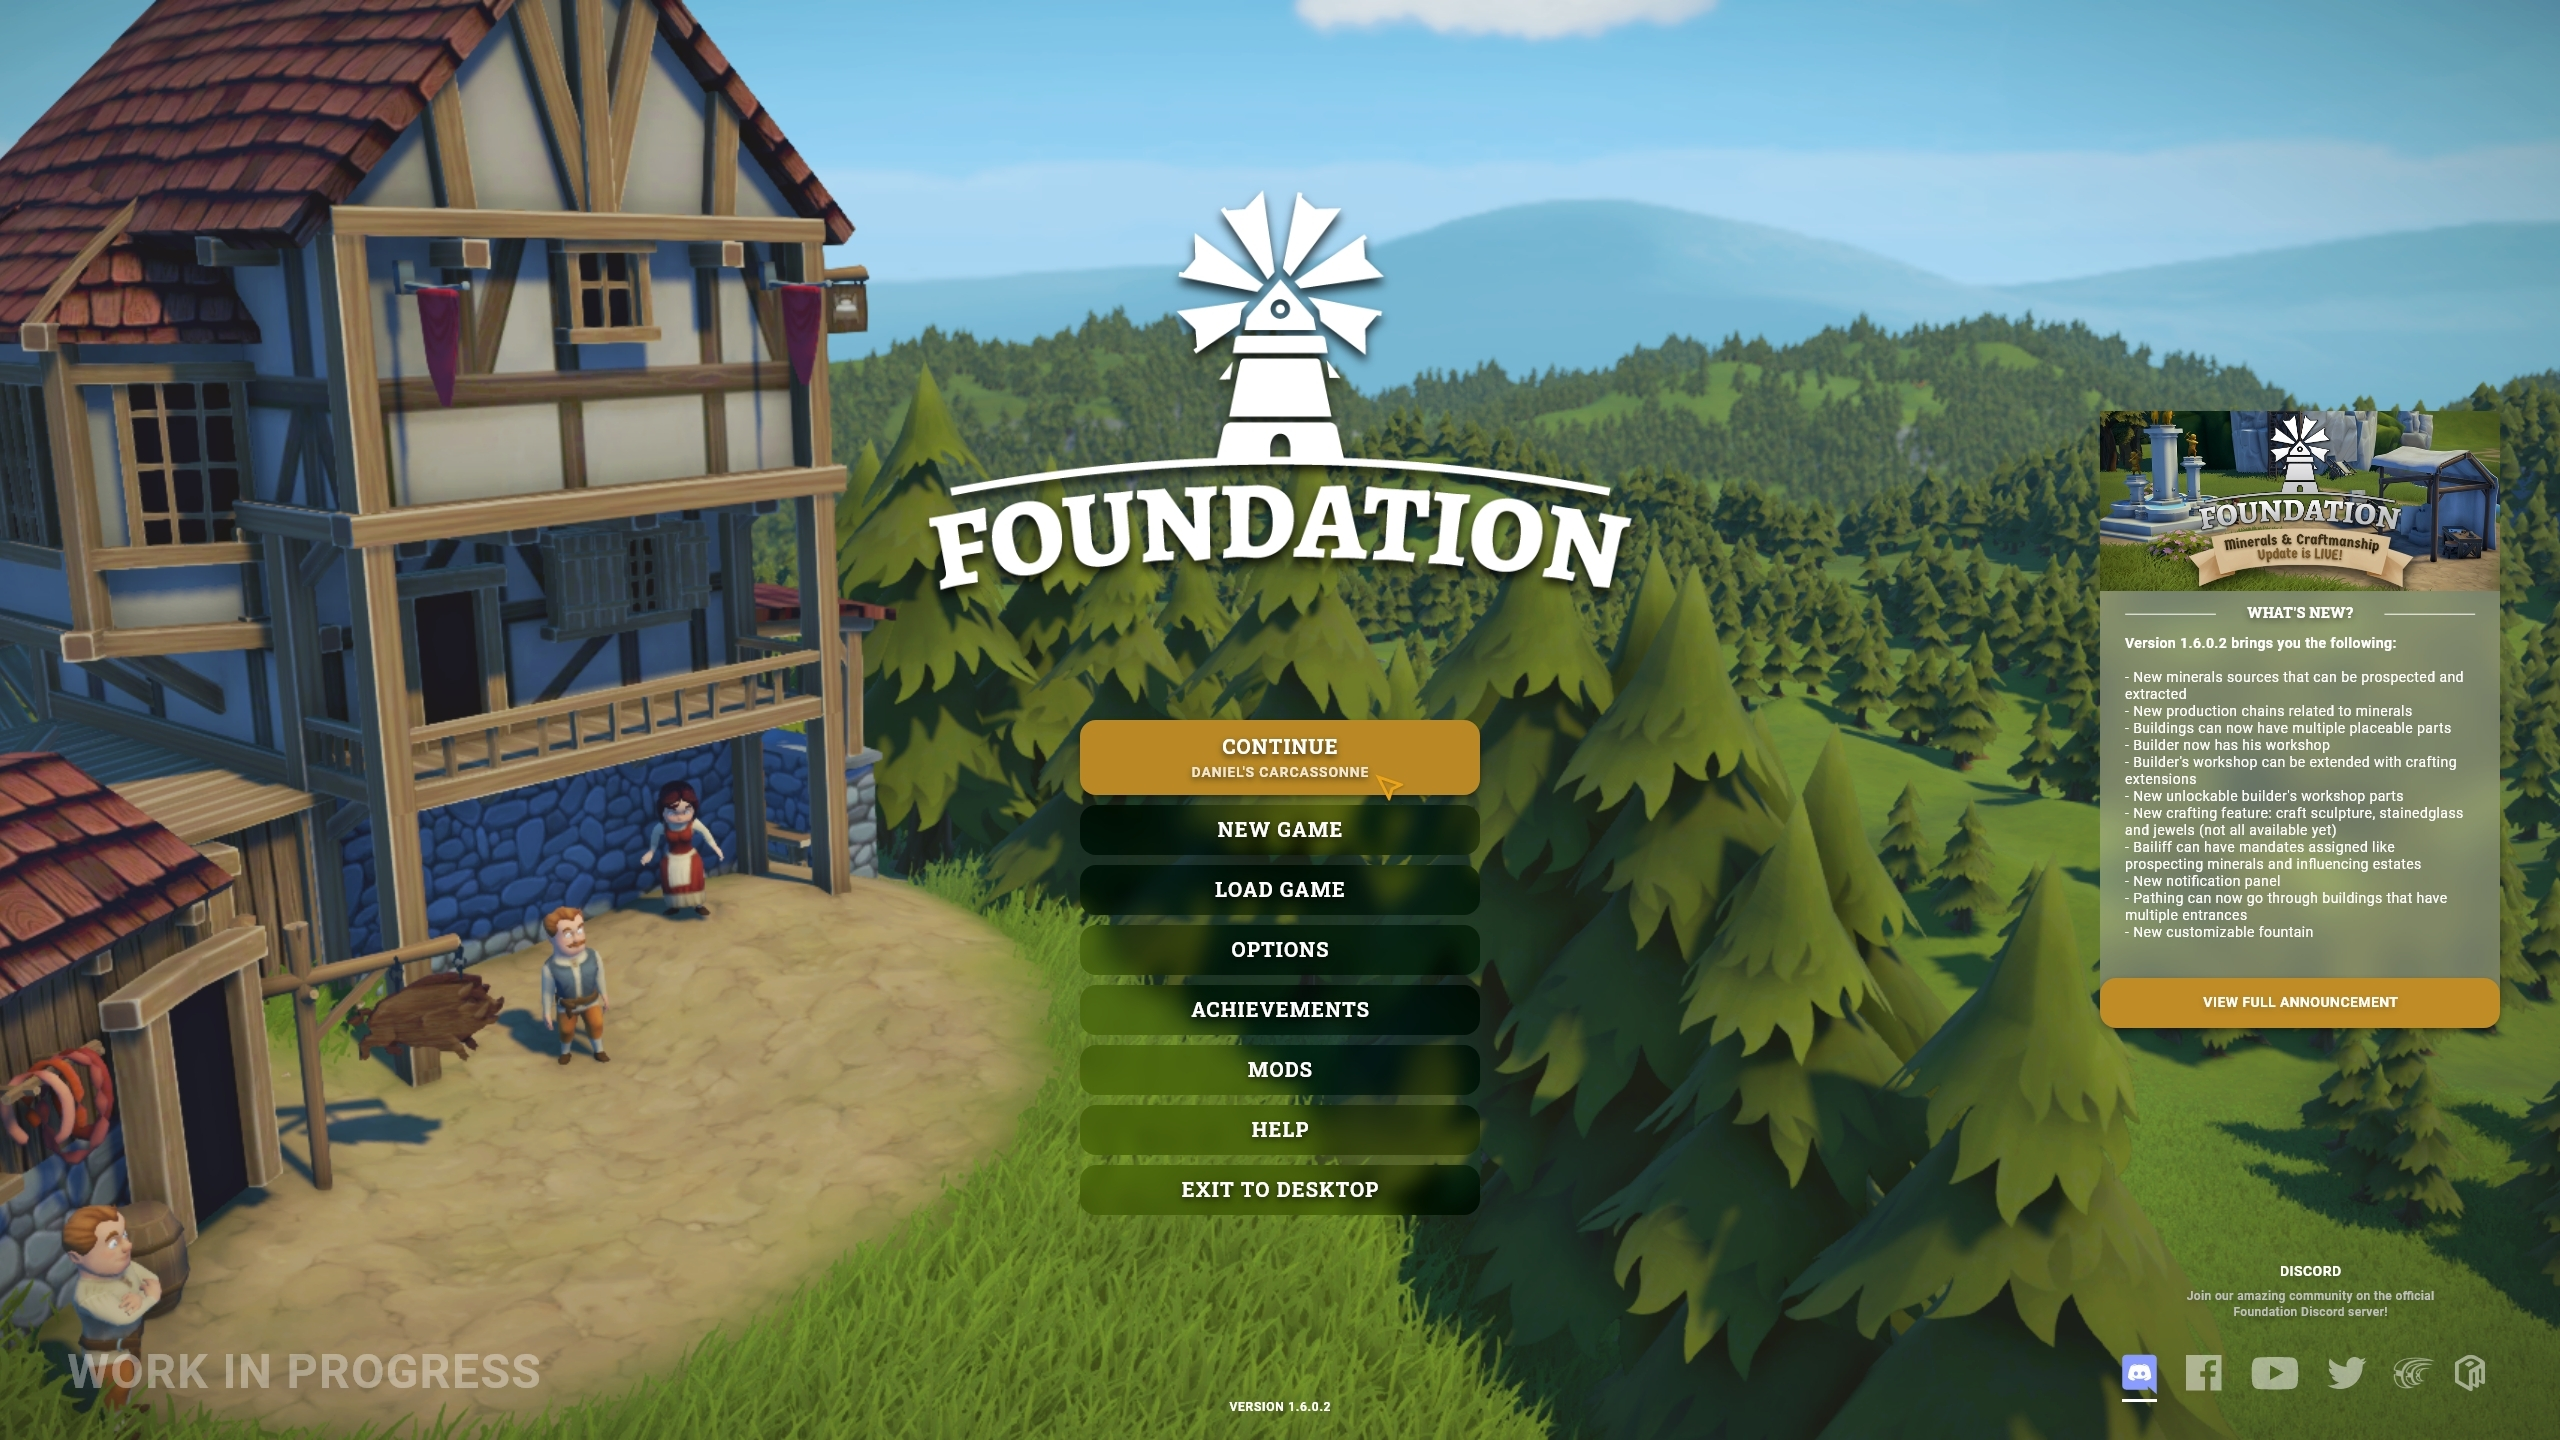 A work in progress screenshot of the new UI for Foundation, this one showing the title screen. There is a clear list of menu items such as Continue, New Game, Load Game, each in clear font on a dark shadow button. The buttons light up a golden brown colour when selected.